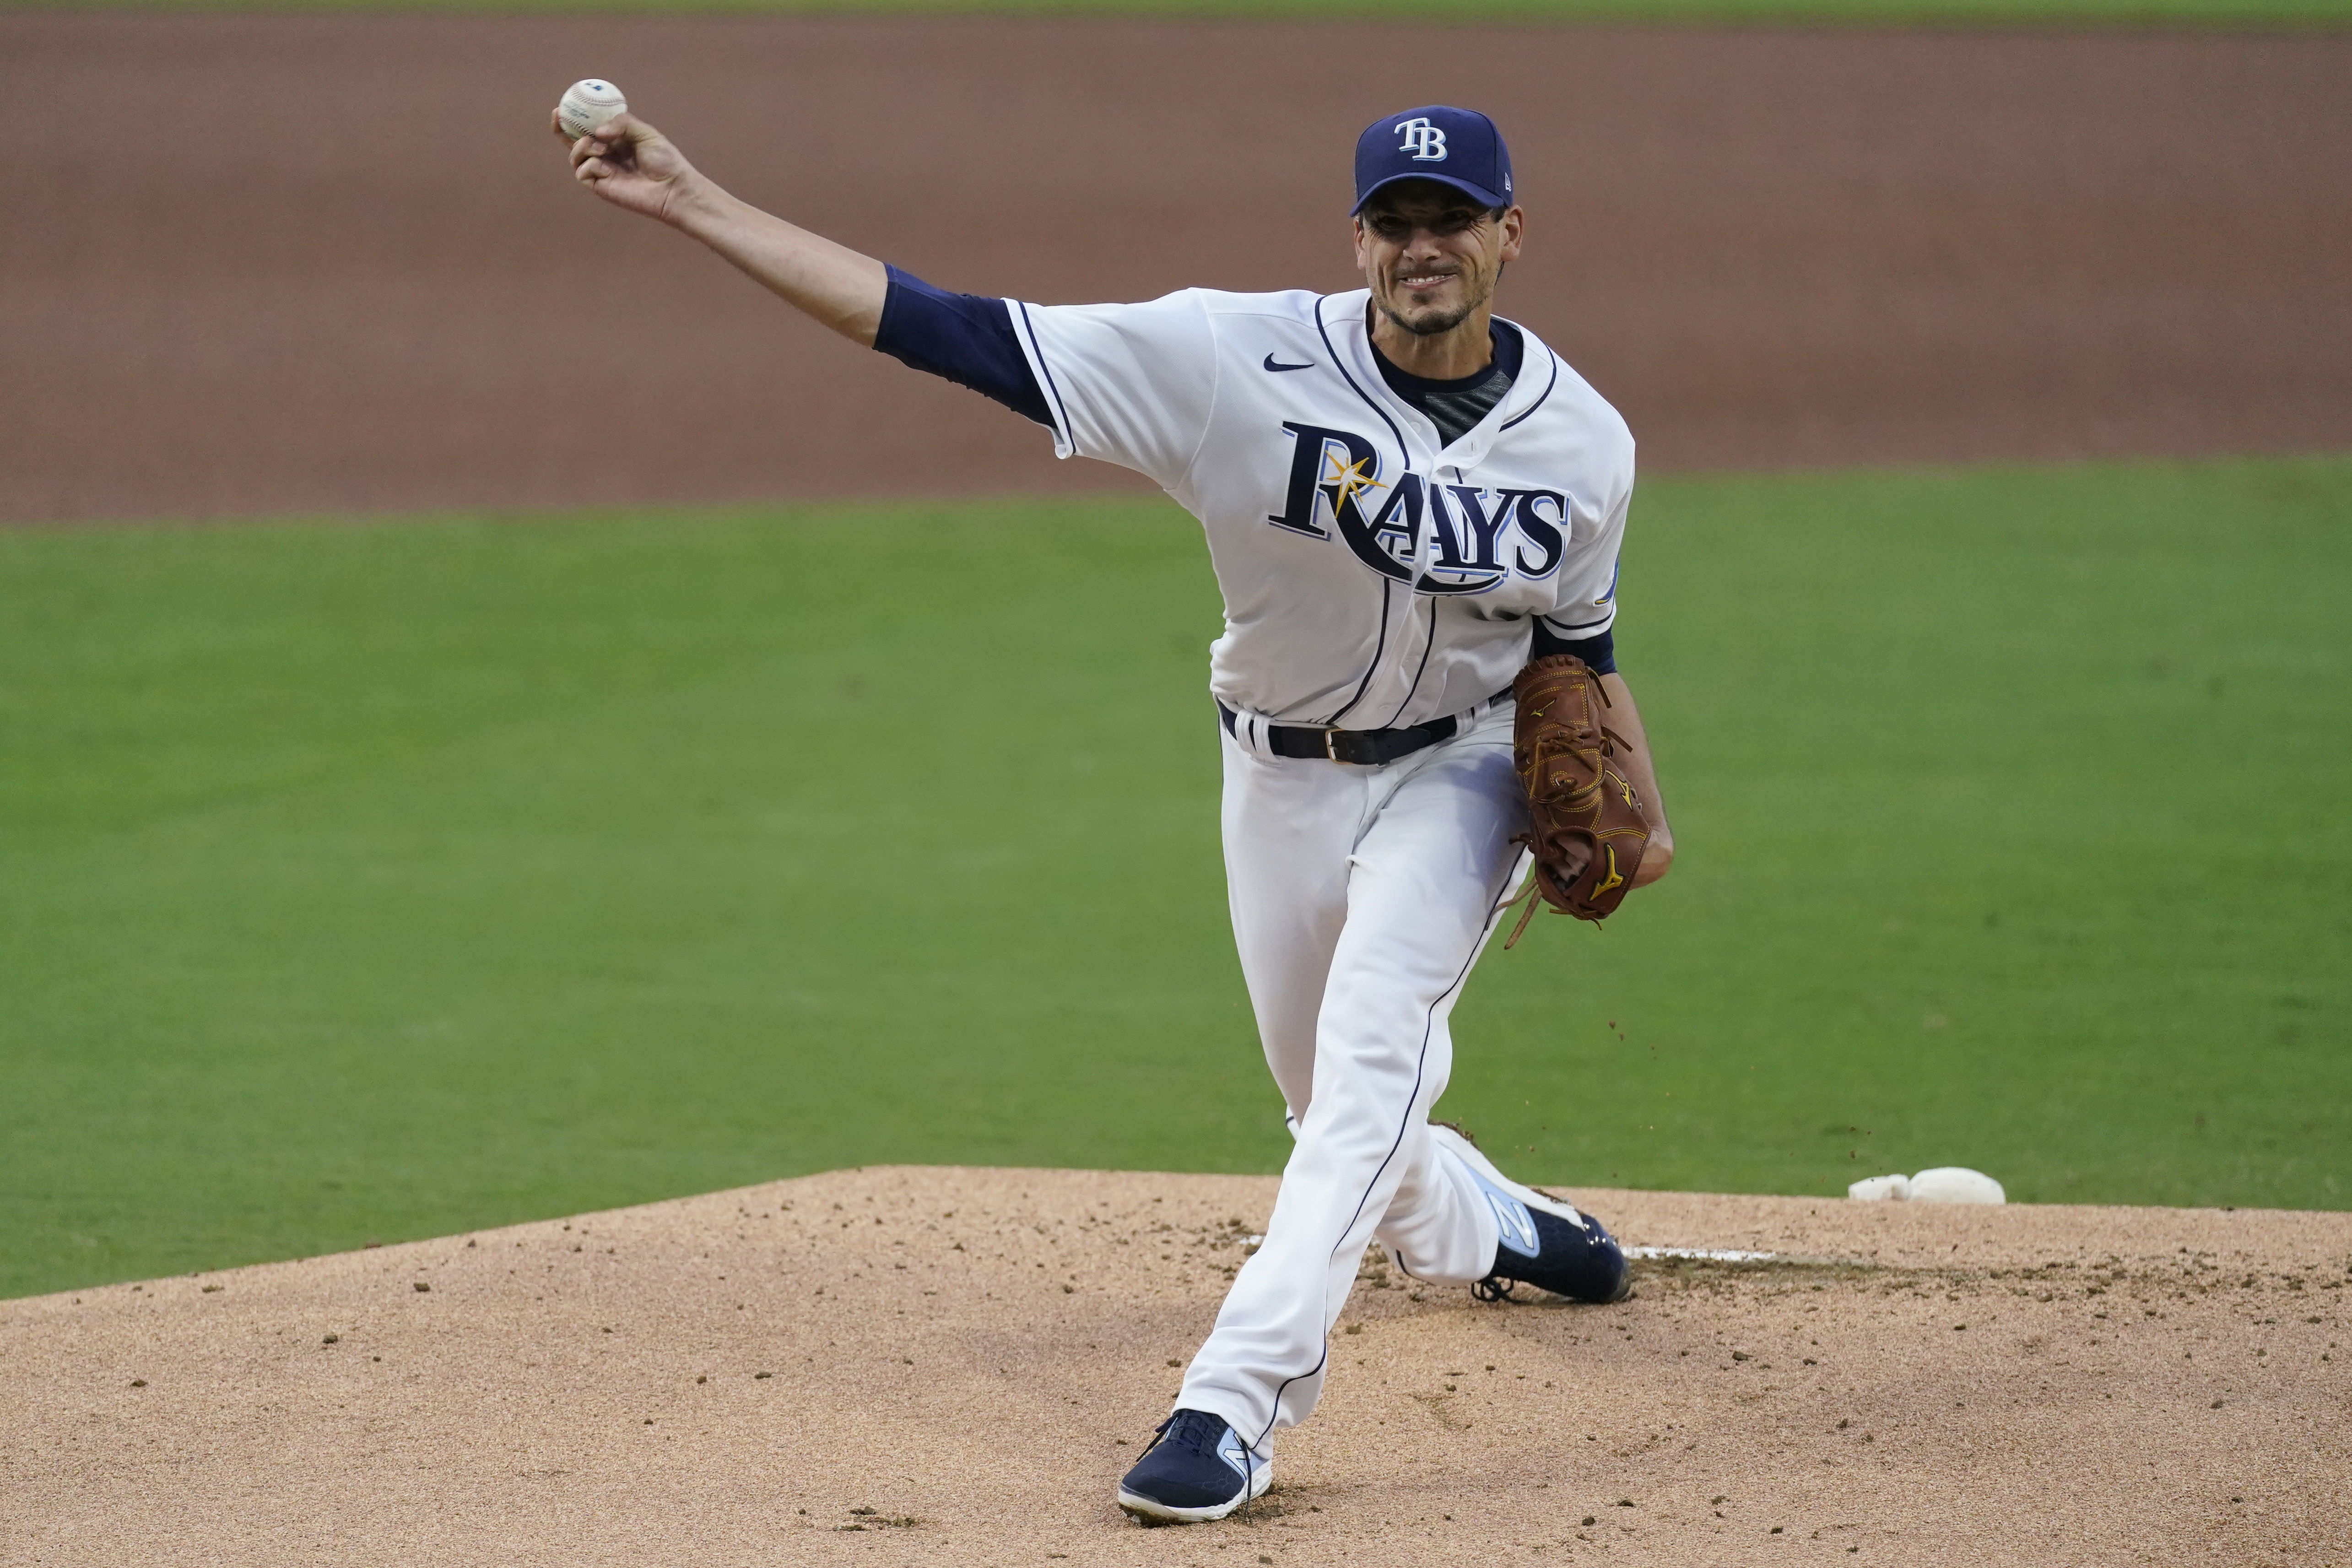 charlie morton signs with braves rumored red sox target headed to atlanta report masslive com 2